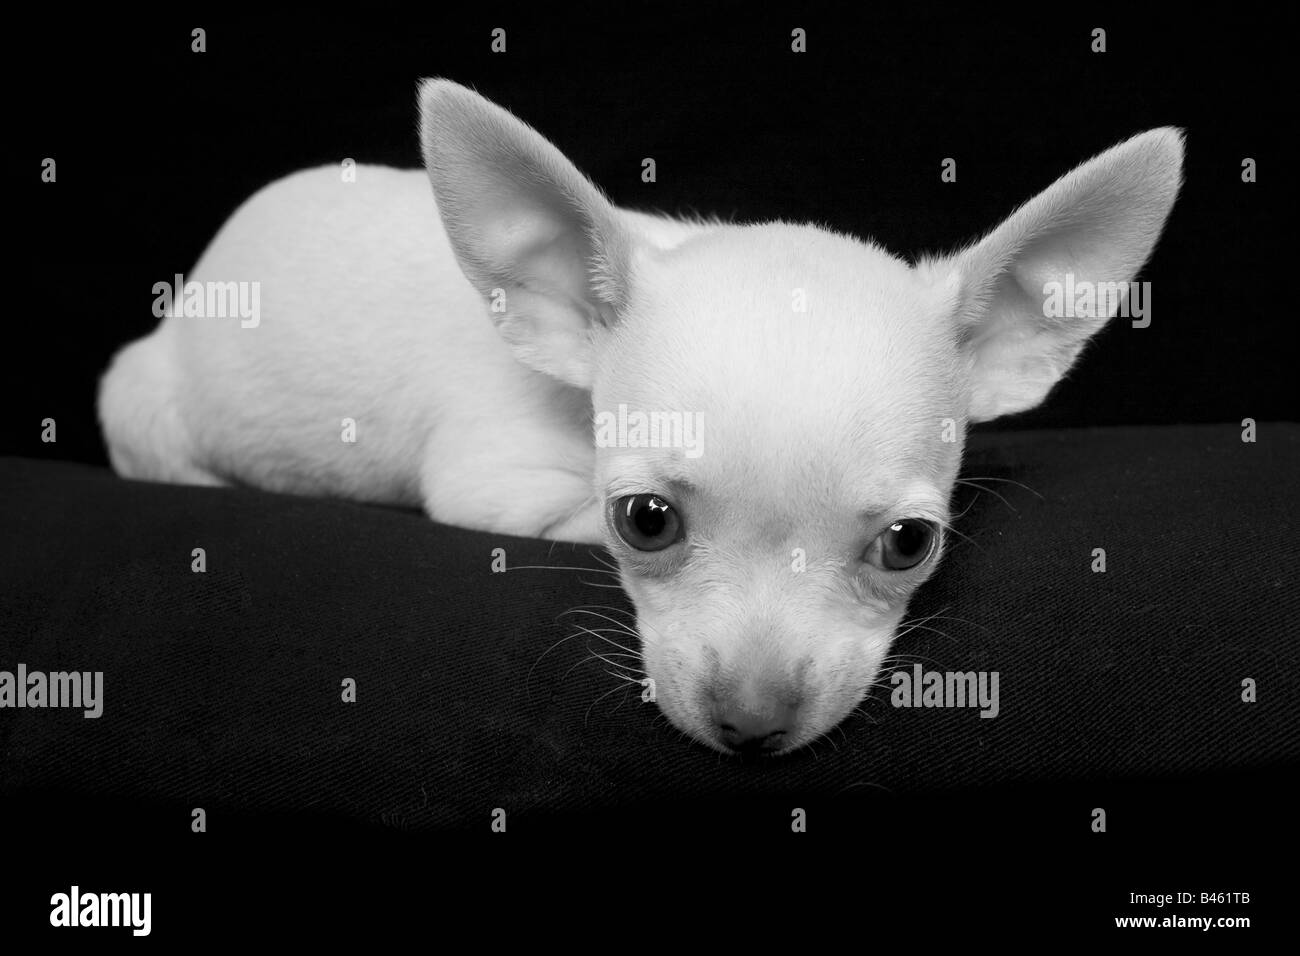 Cute cream color shorthaired Chihuahua puppy in monotone on black background - Stock Image